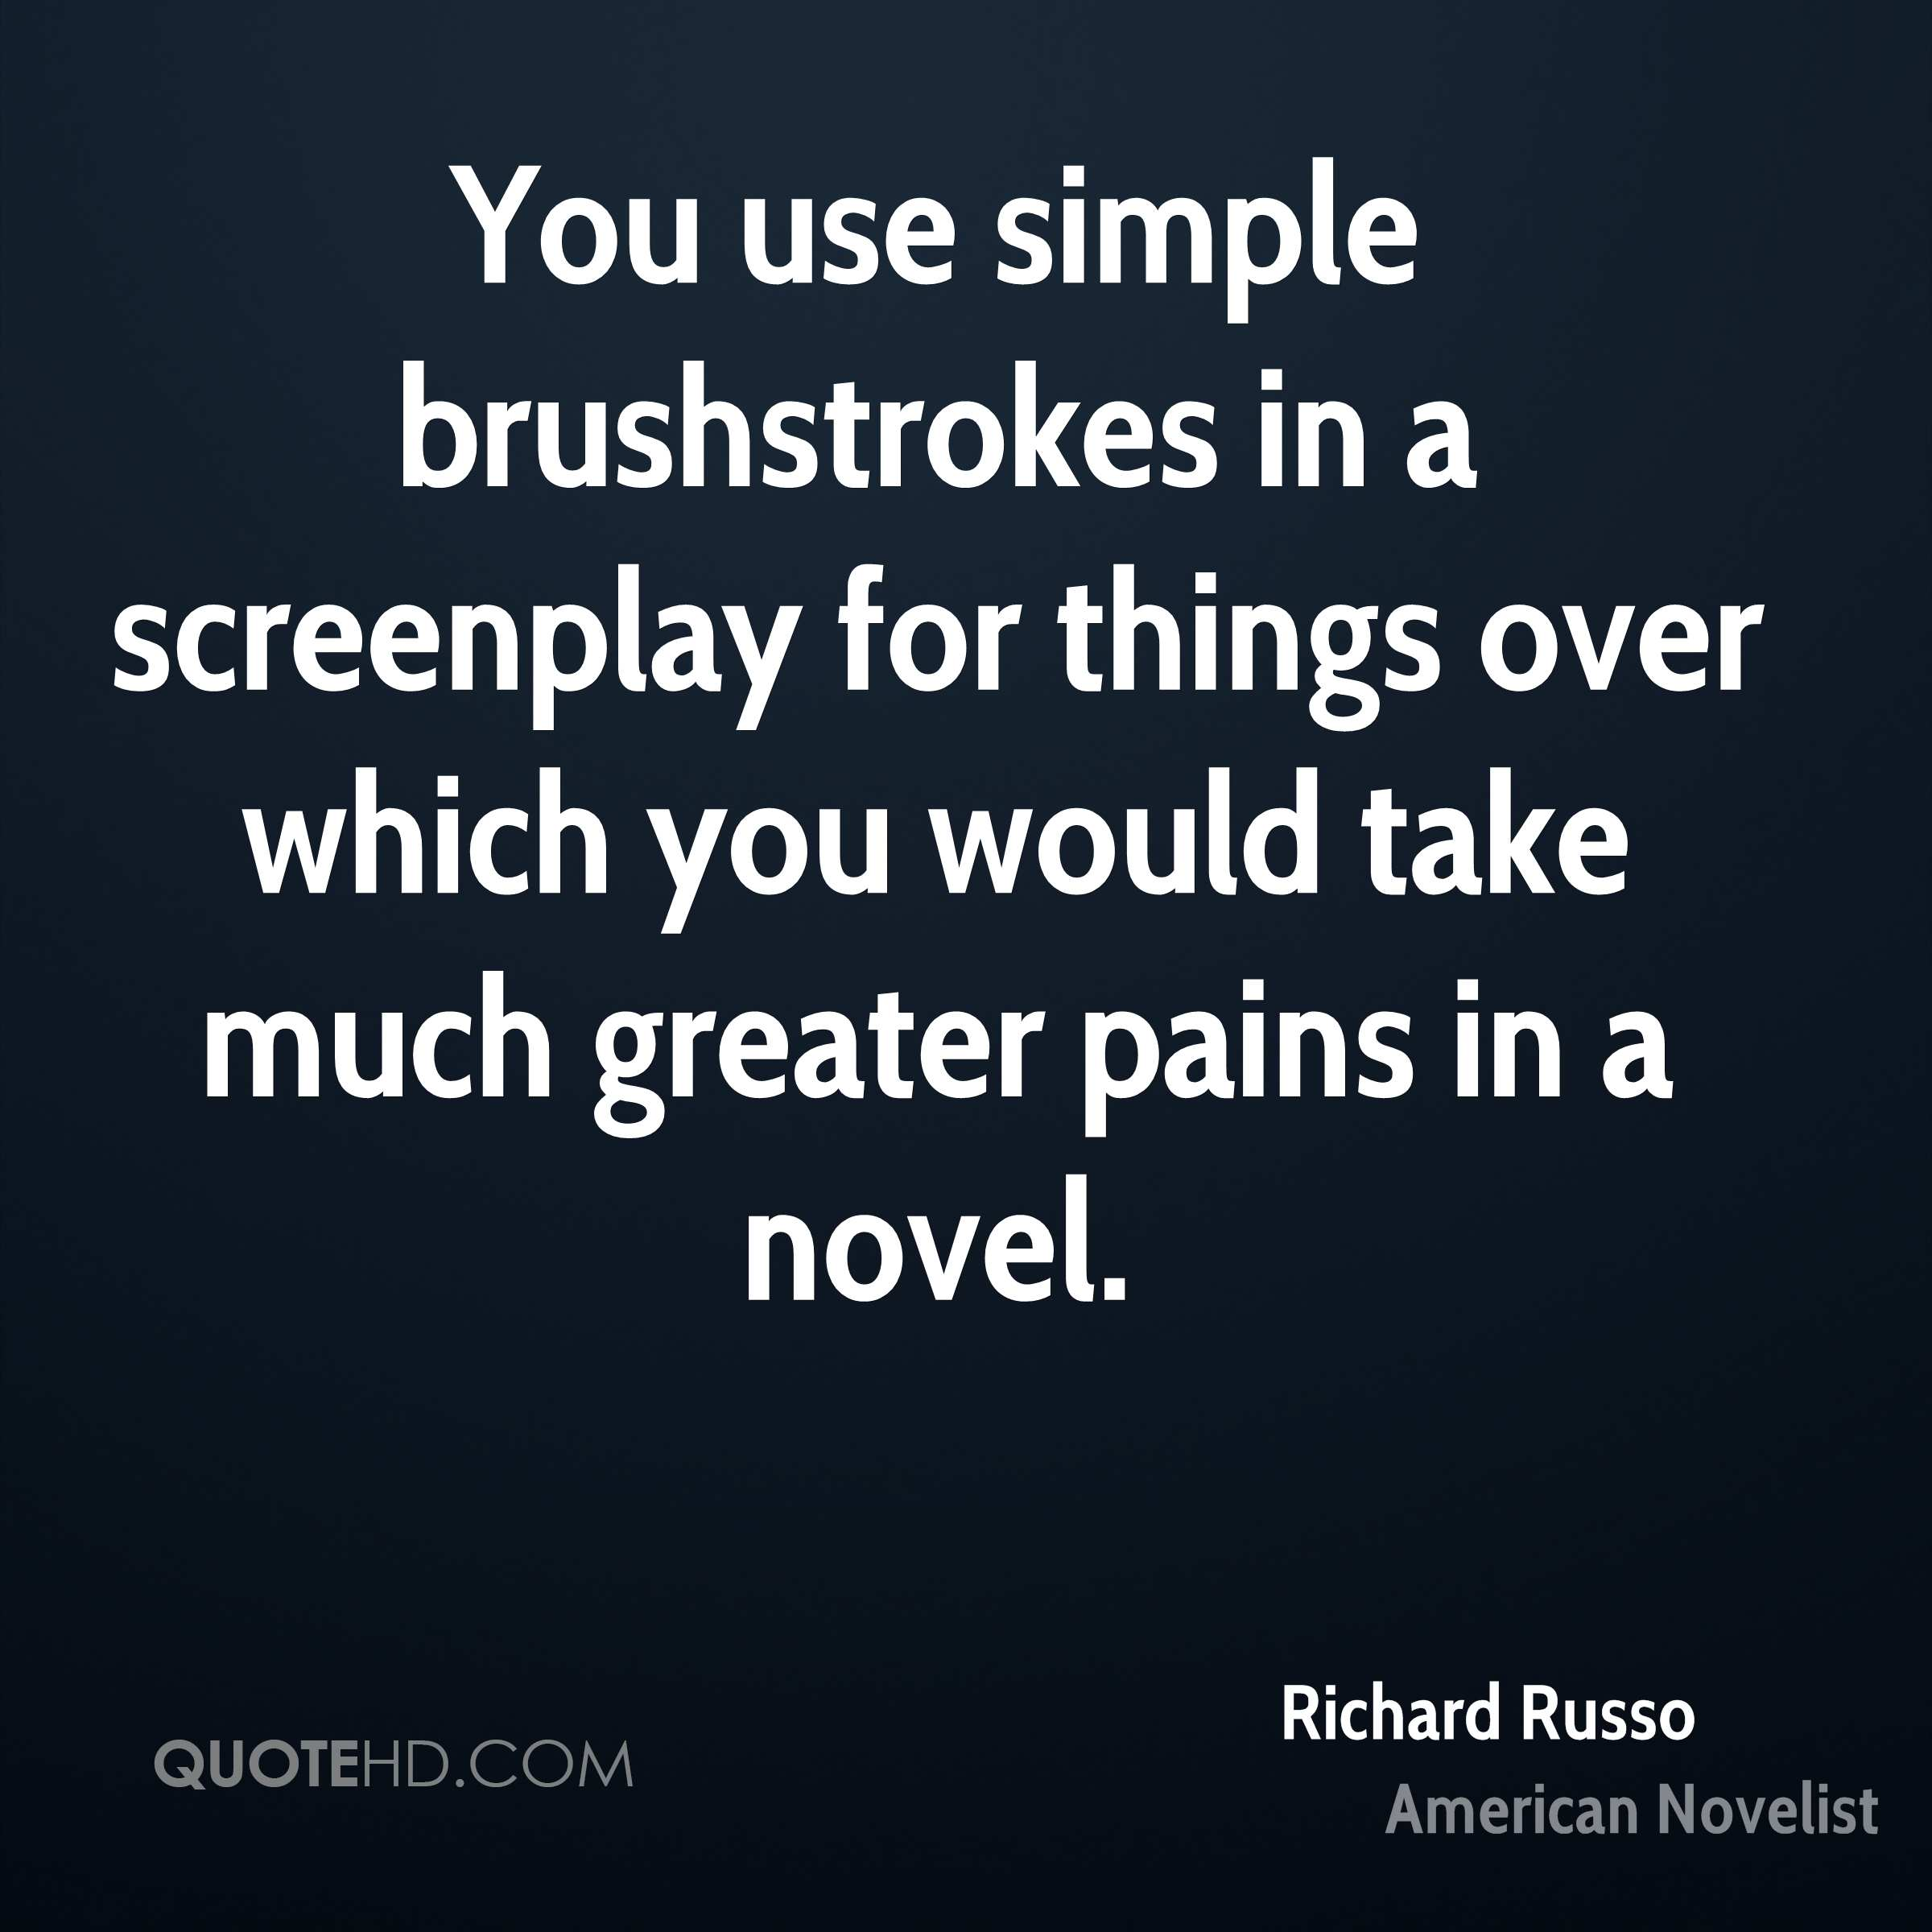 You use simple brushstrokes in a screenplay for things over which you would take much greater pains in a novel.